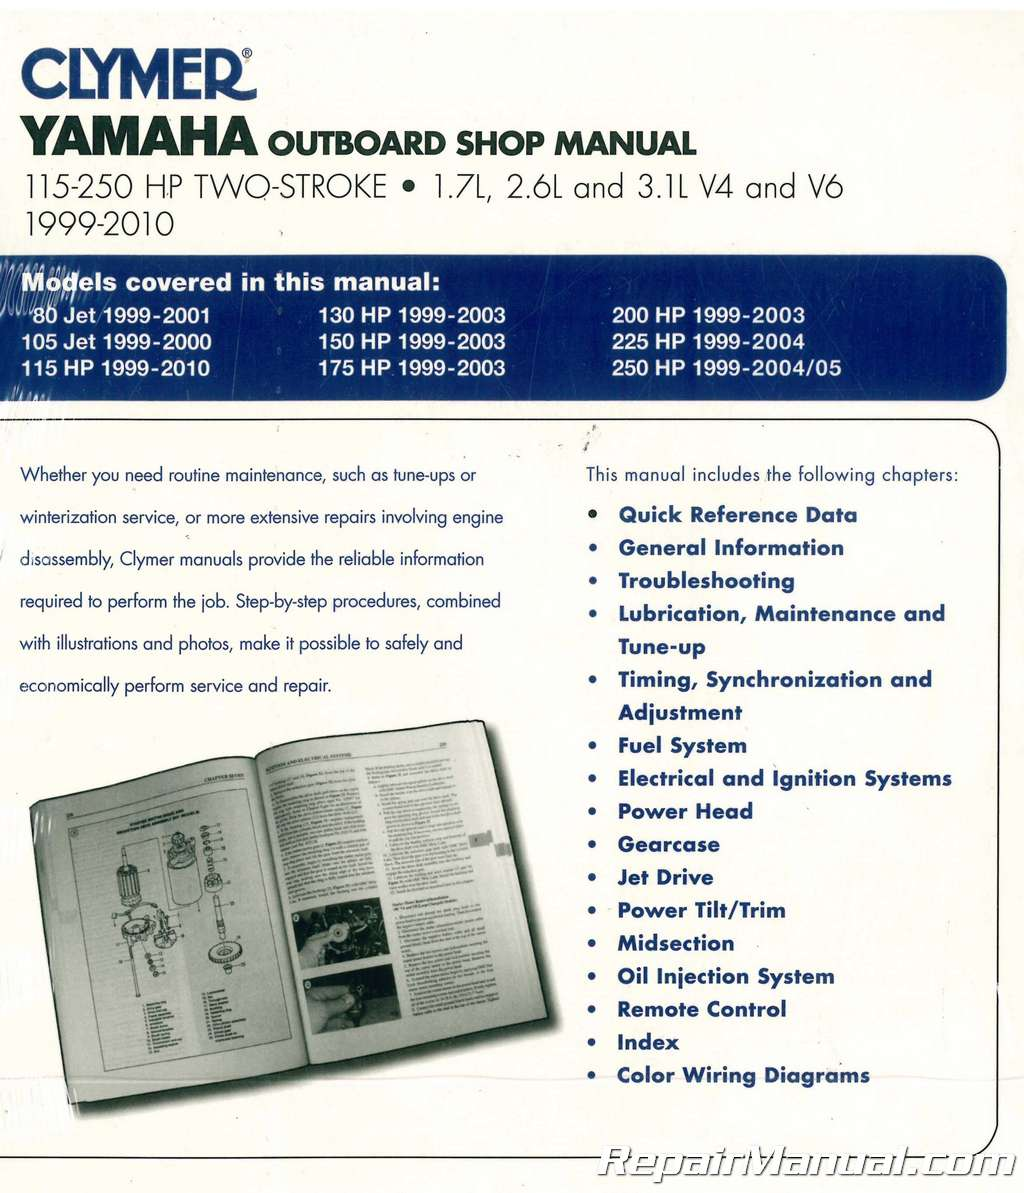 Clymer Yamaha 115-250 hp Two-Stroke Outboards 1999-2010 Boat Repair Manual